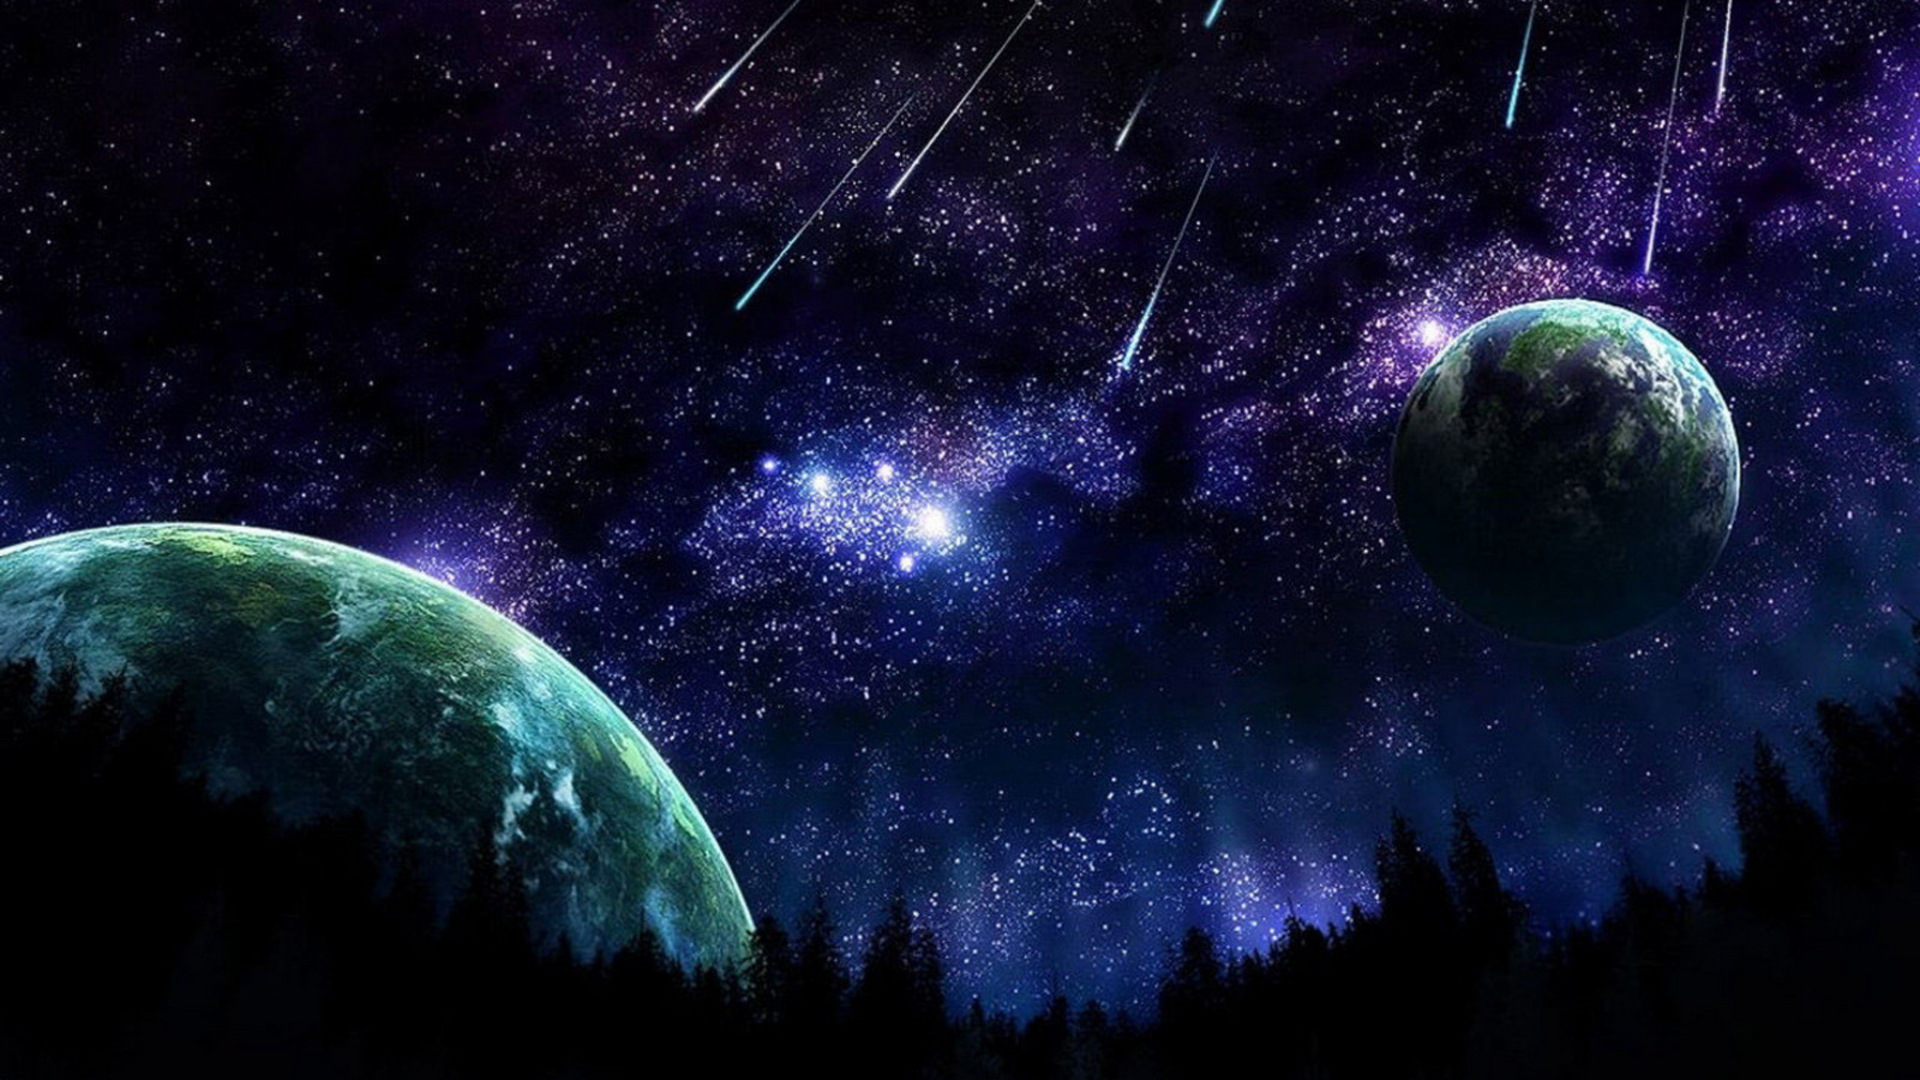 Outer Space Computer Backgrounds Download HD Wallpapers 1920x1080